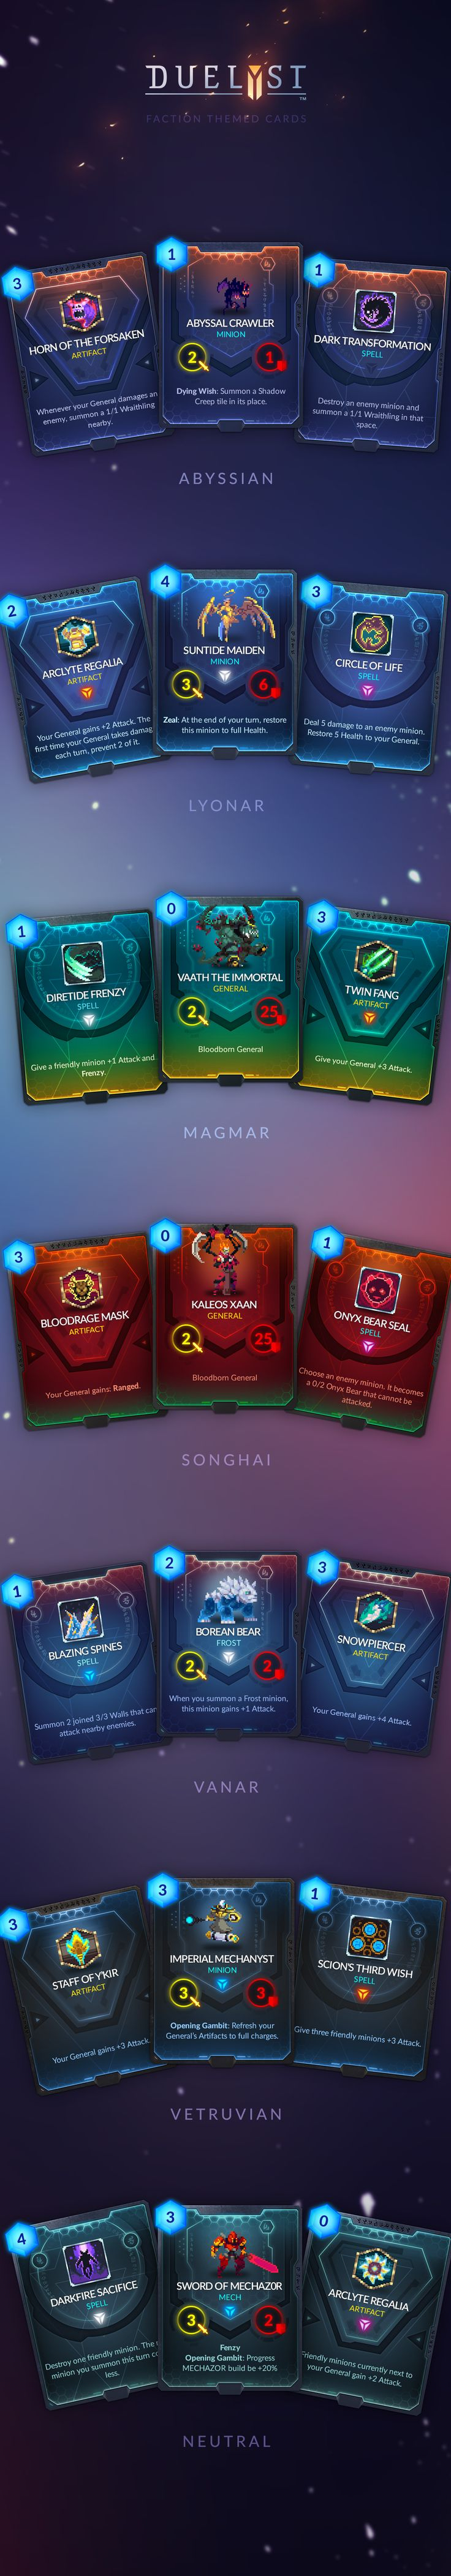 Duelyst Cards on Behance